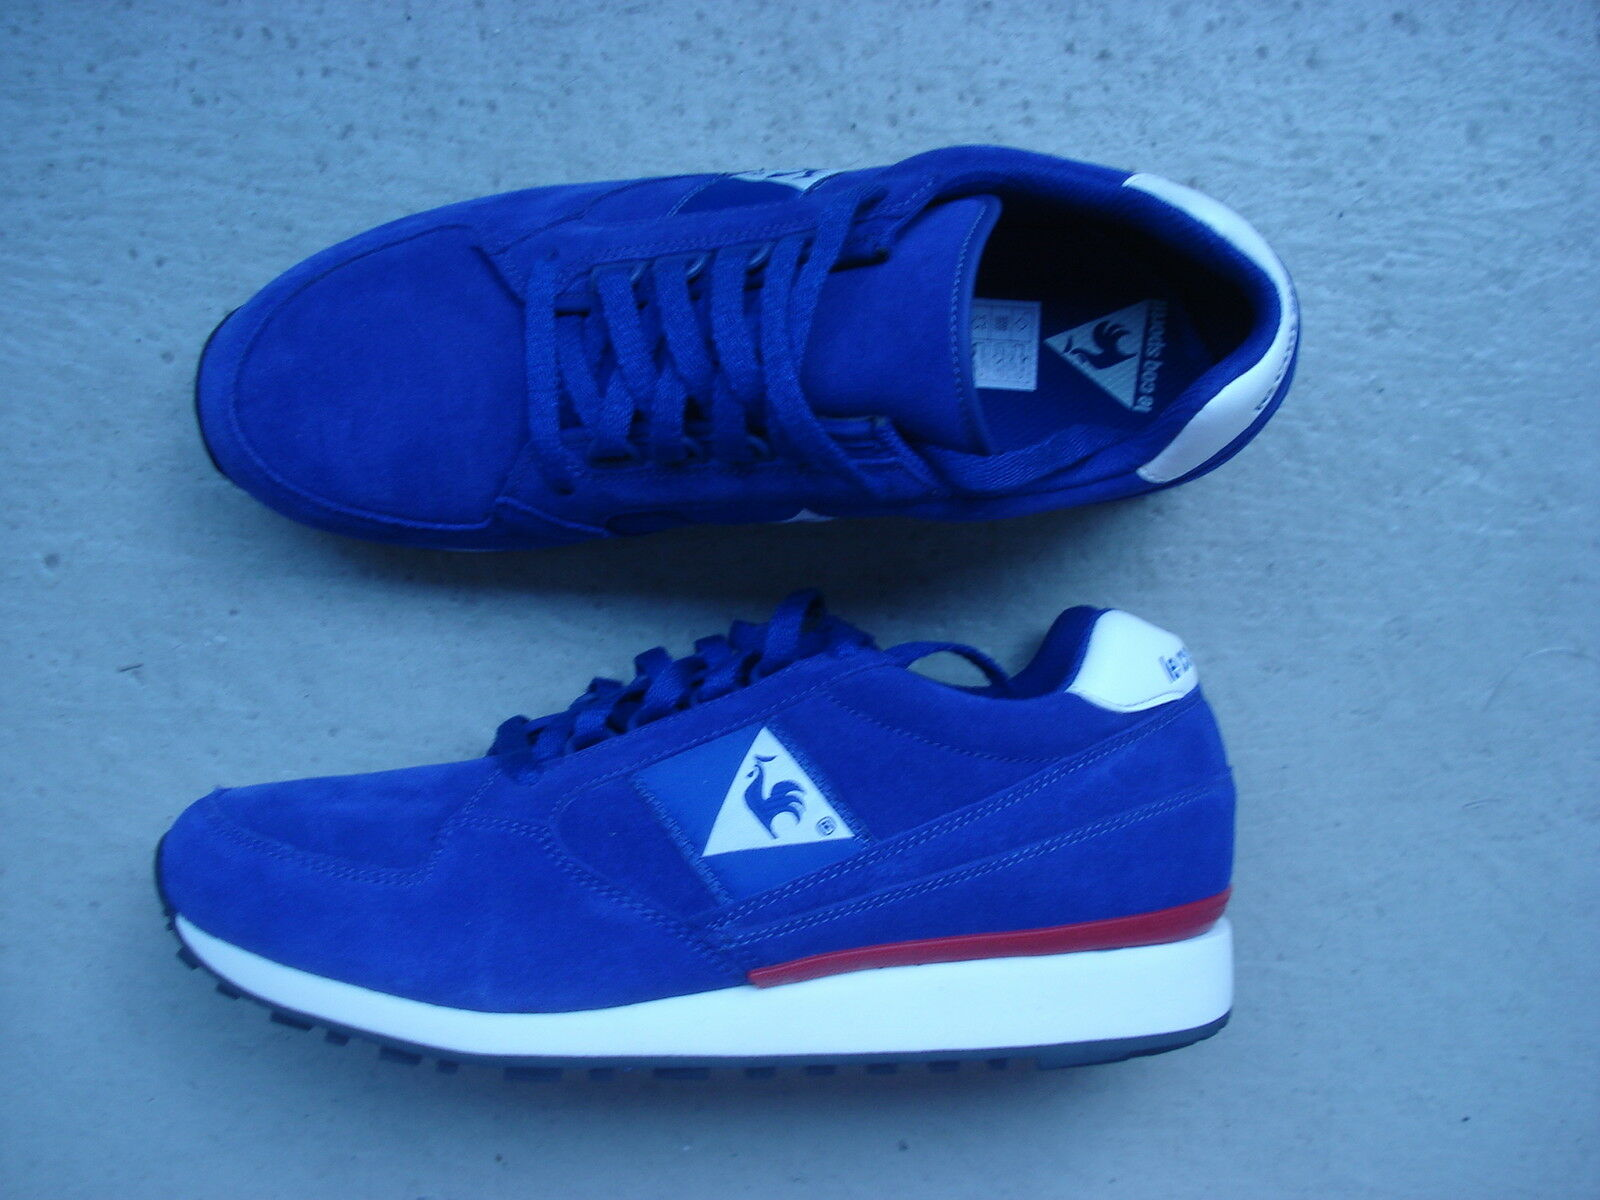 Le Coq Sportif 44 Eclate Suede Leather Sodalite Blue/Vintage Red